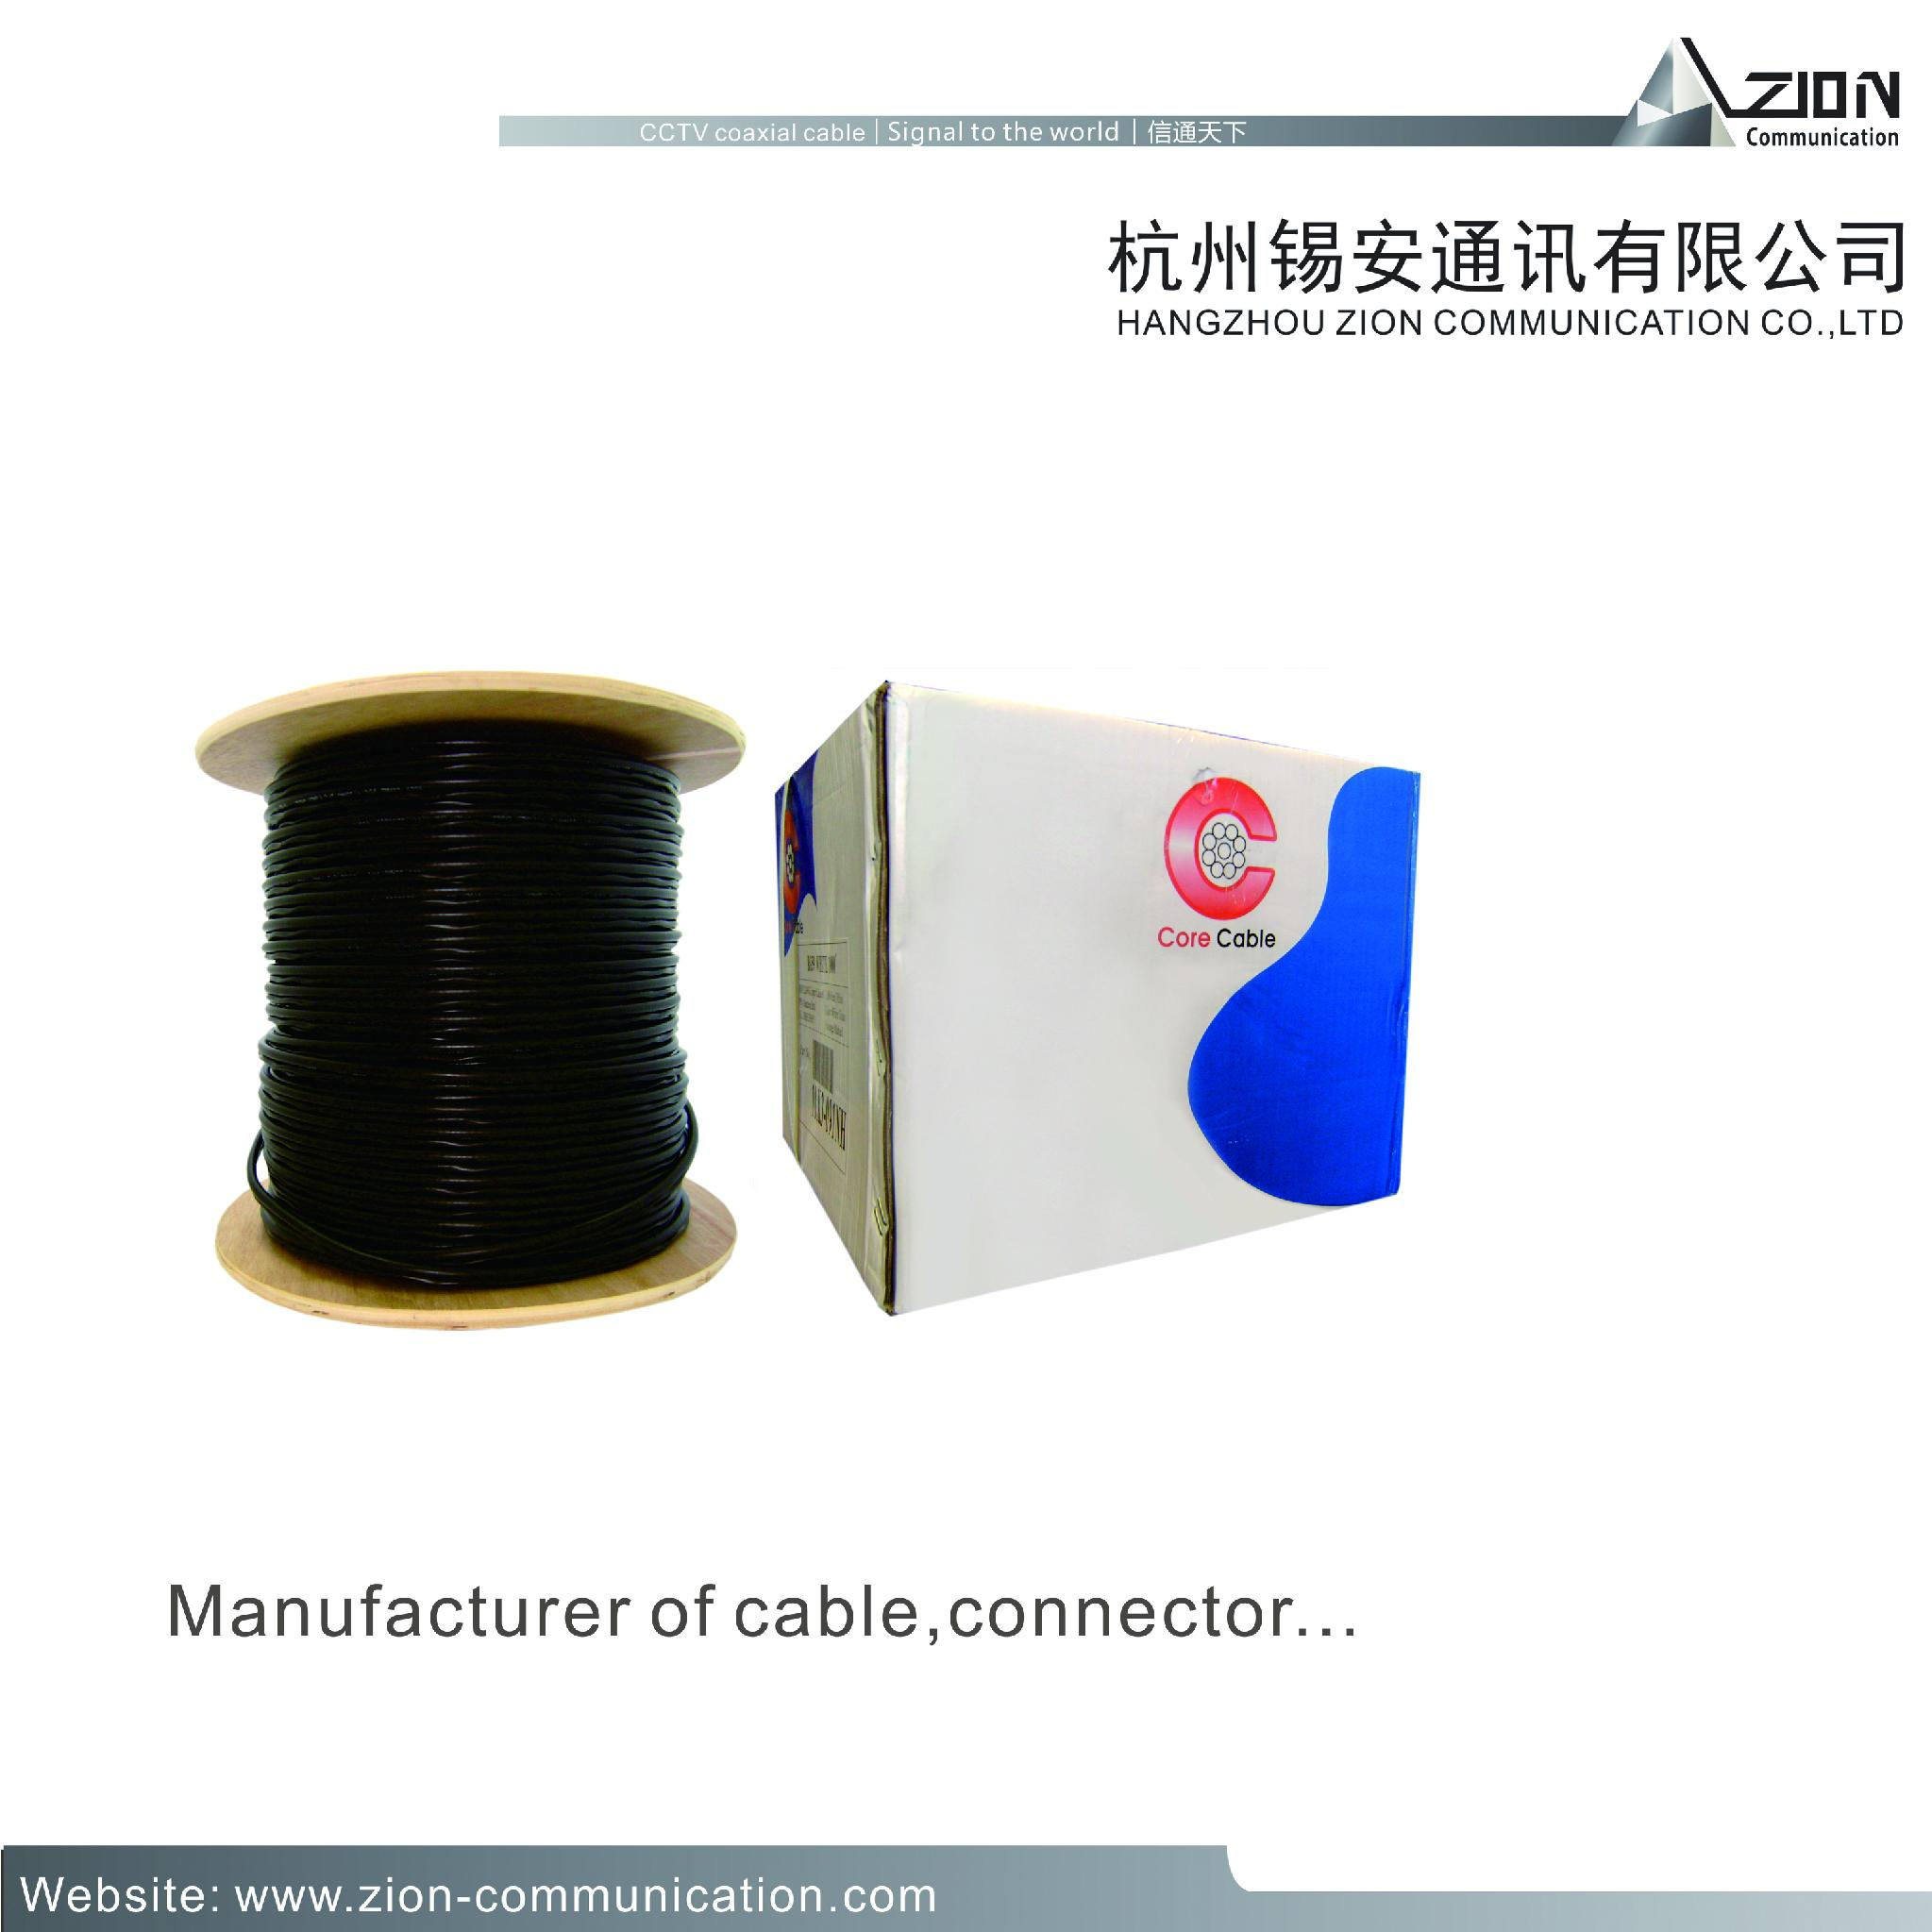 zion communication 0.81CU conductor rg59 camera cable coaxial cable manufacturer 4